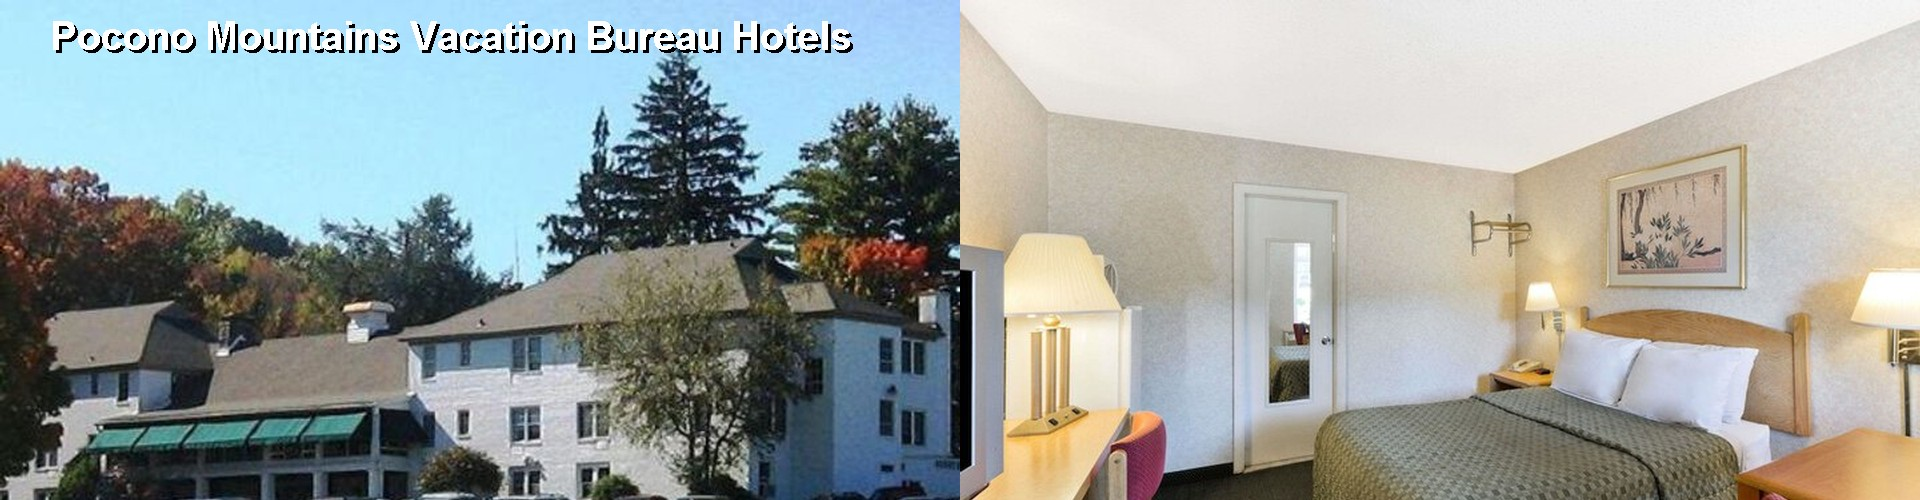 5 Best Hotels Near Pocono Mountains Vacation Bureau